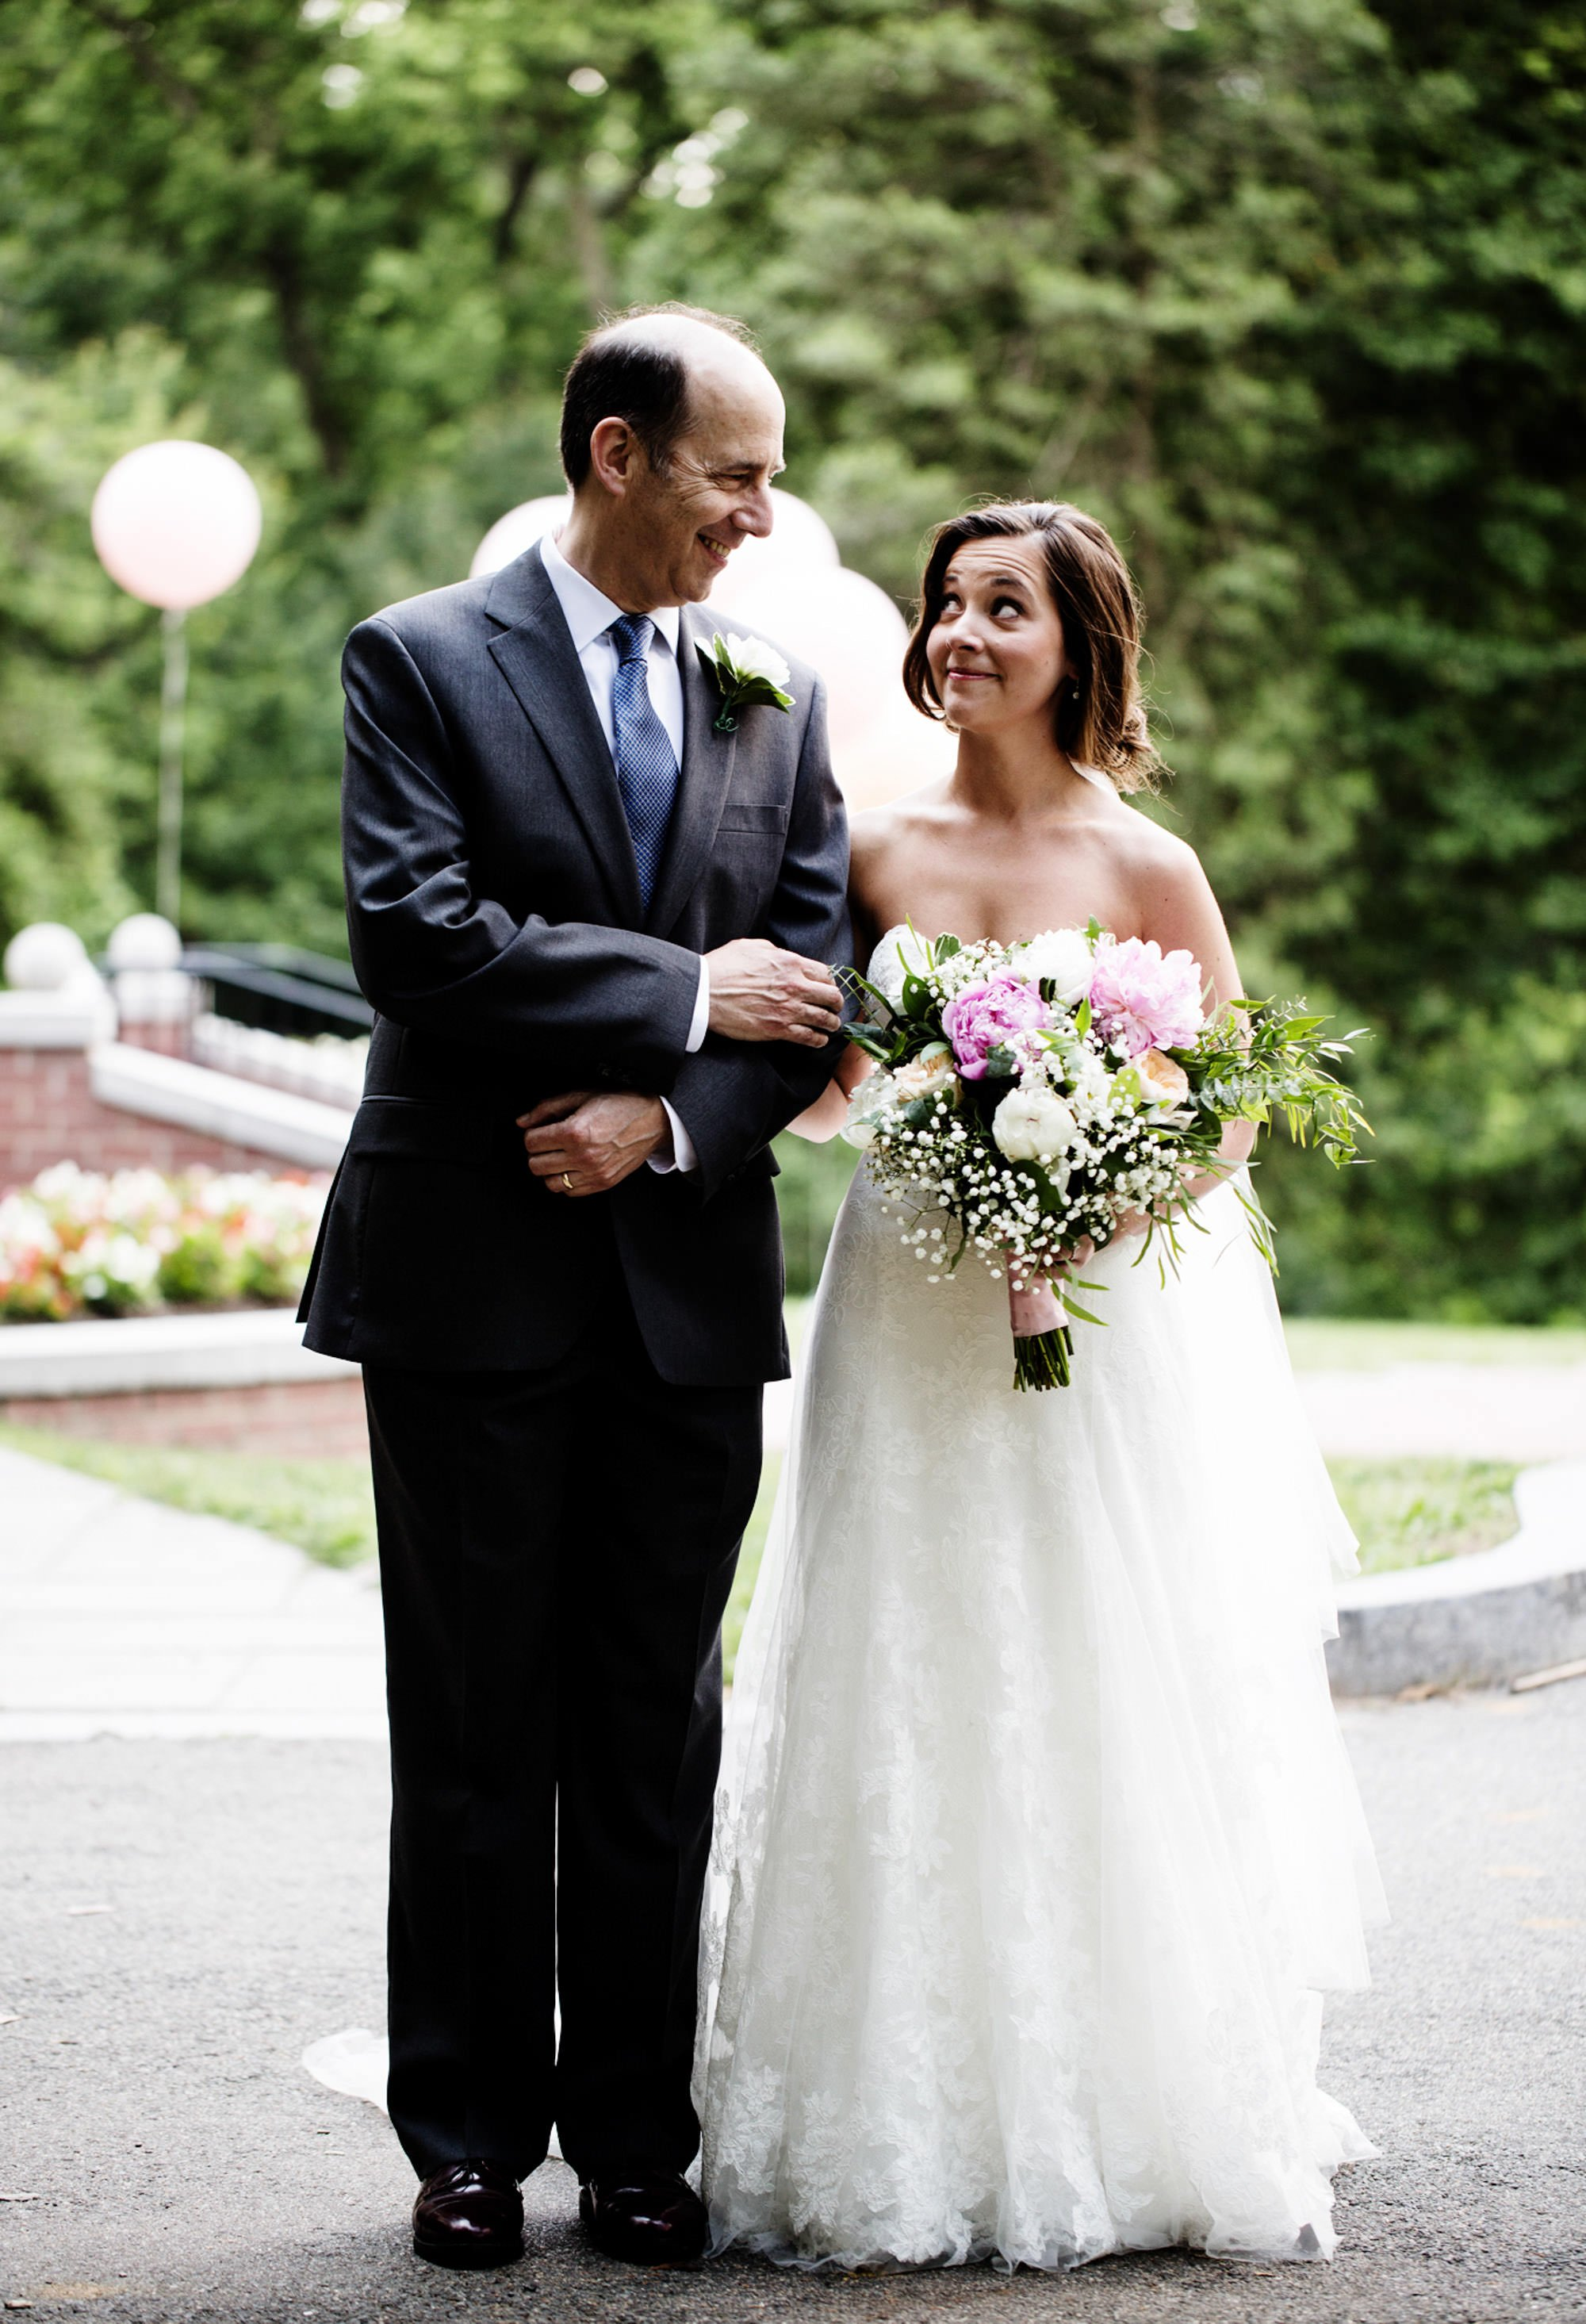 The father of the bride smiles at his daughter prior to the wedding ceremony.